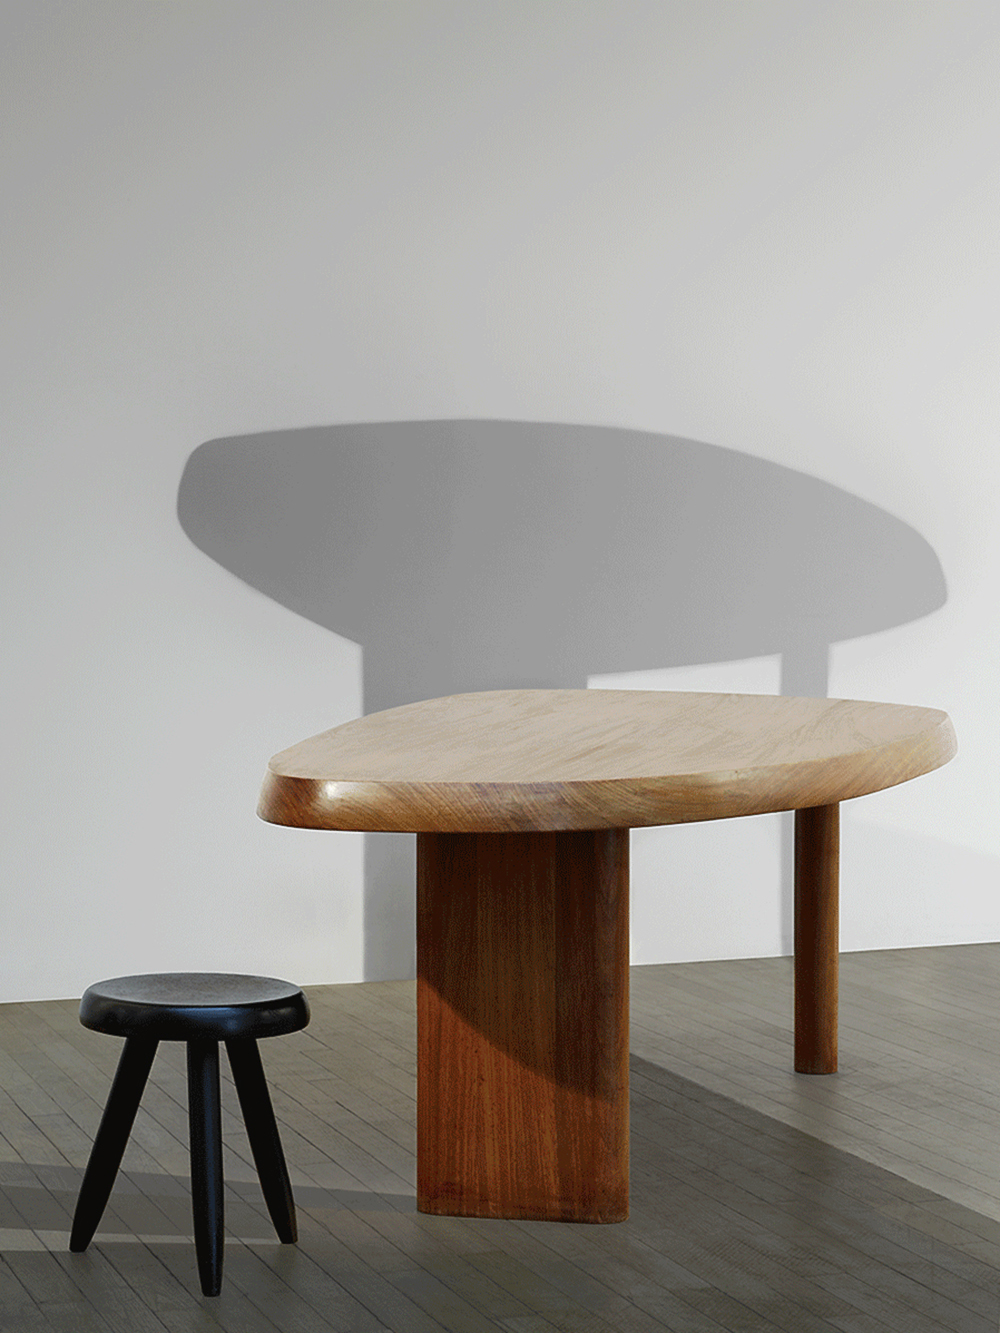 © Marie Clérin / Laffanour Galerie Downtown, Paris Charlotte Perriand (1901-1984), « Free-form » table, 1960 Free-form top made of ash resting on three legs (2 cylincal and 1 ovoïd). H. 27.9 x W. 95.7 x D. 42.7 x Thick. 2.4 in.